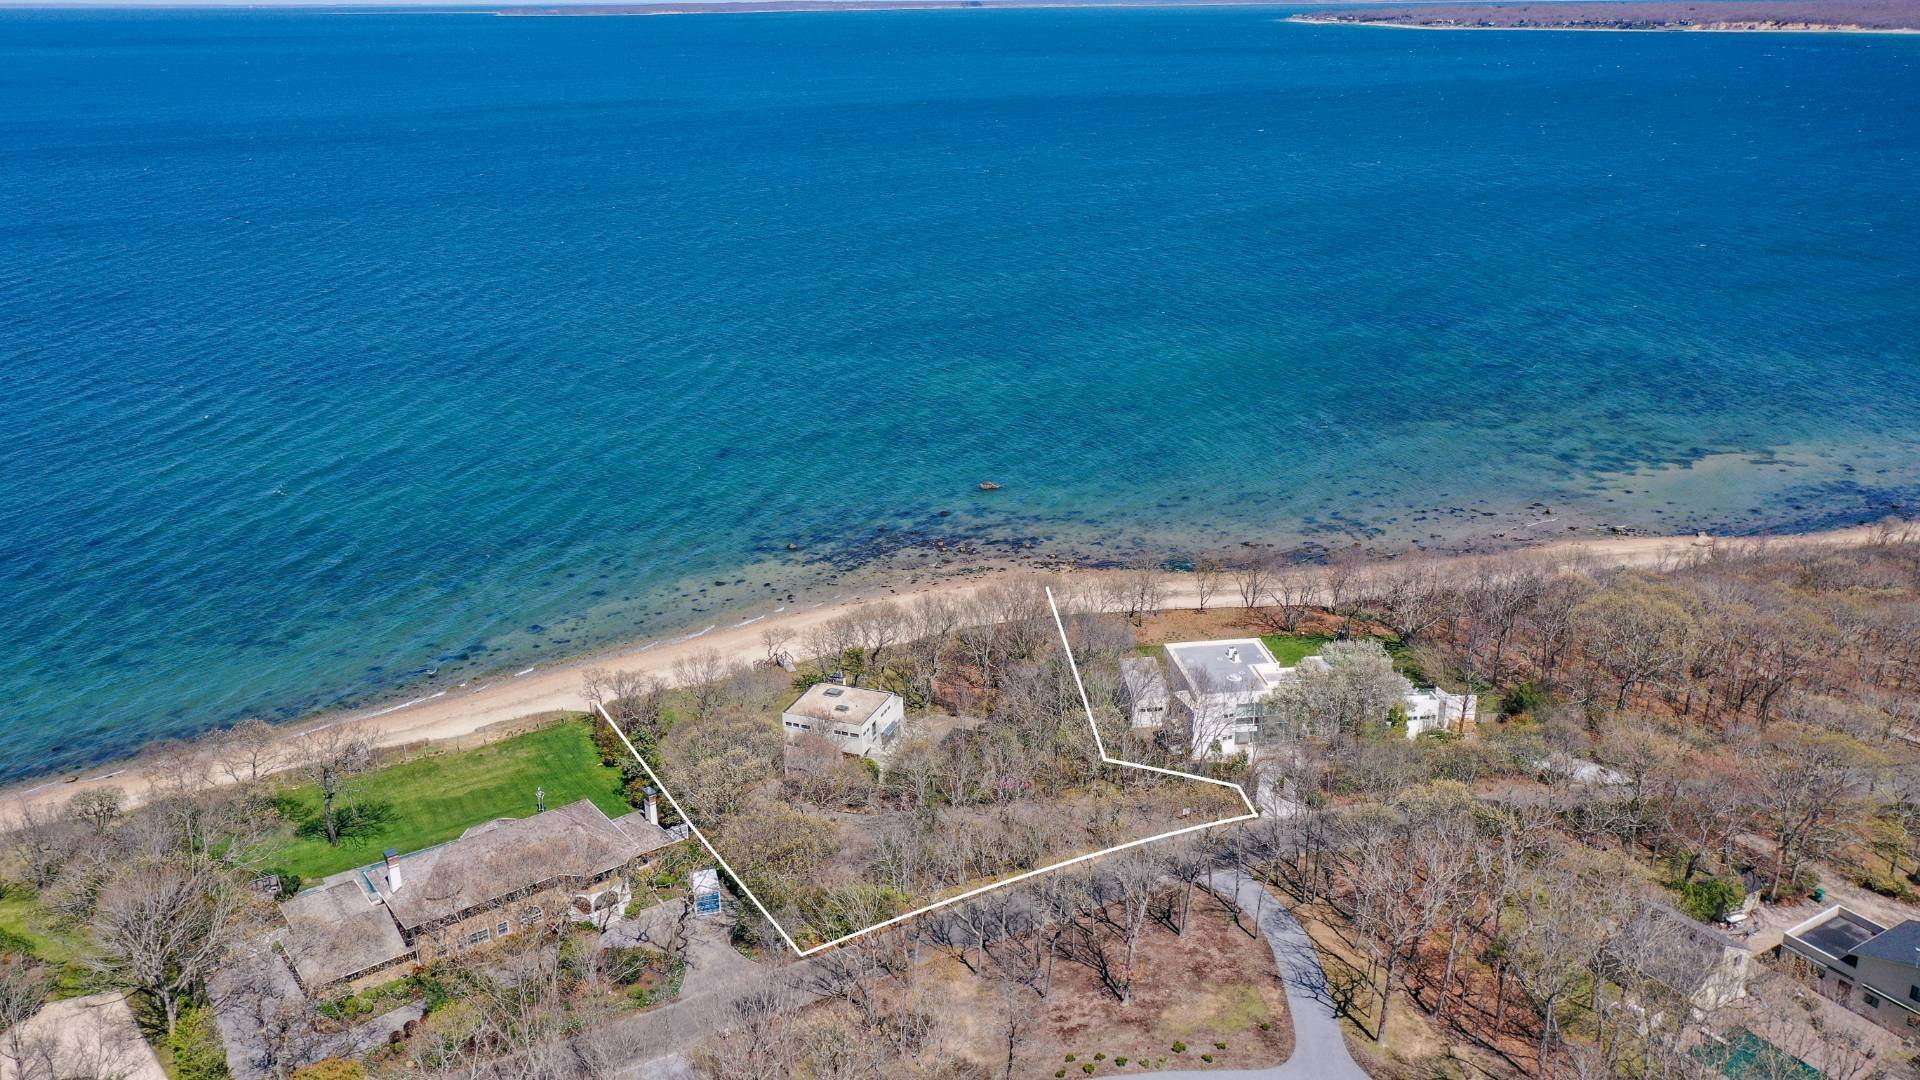 Single Family Home for Sale at Gardiner's Bay Waterfront 42 Hedges Banks Drive, East Hampton, NY 11937